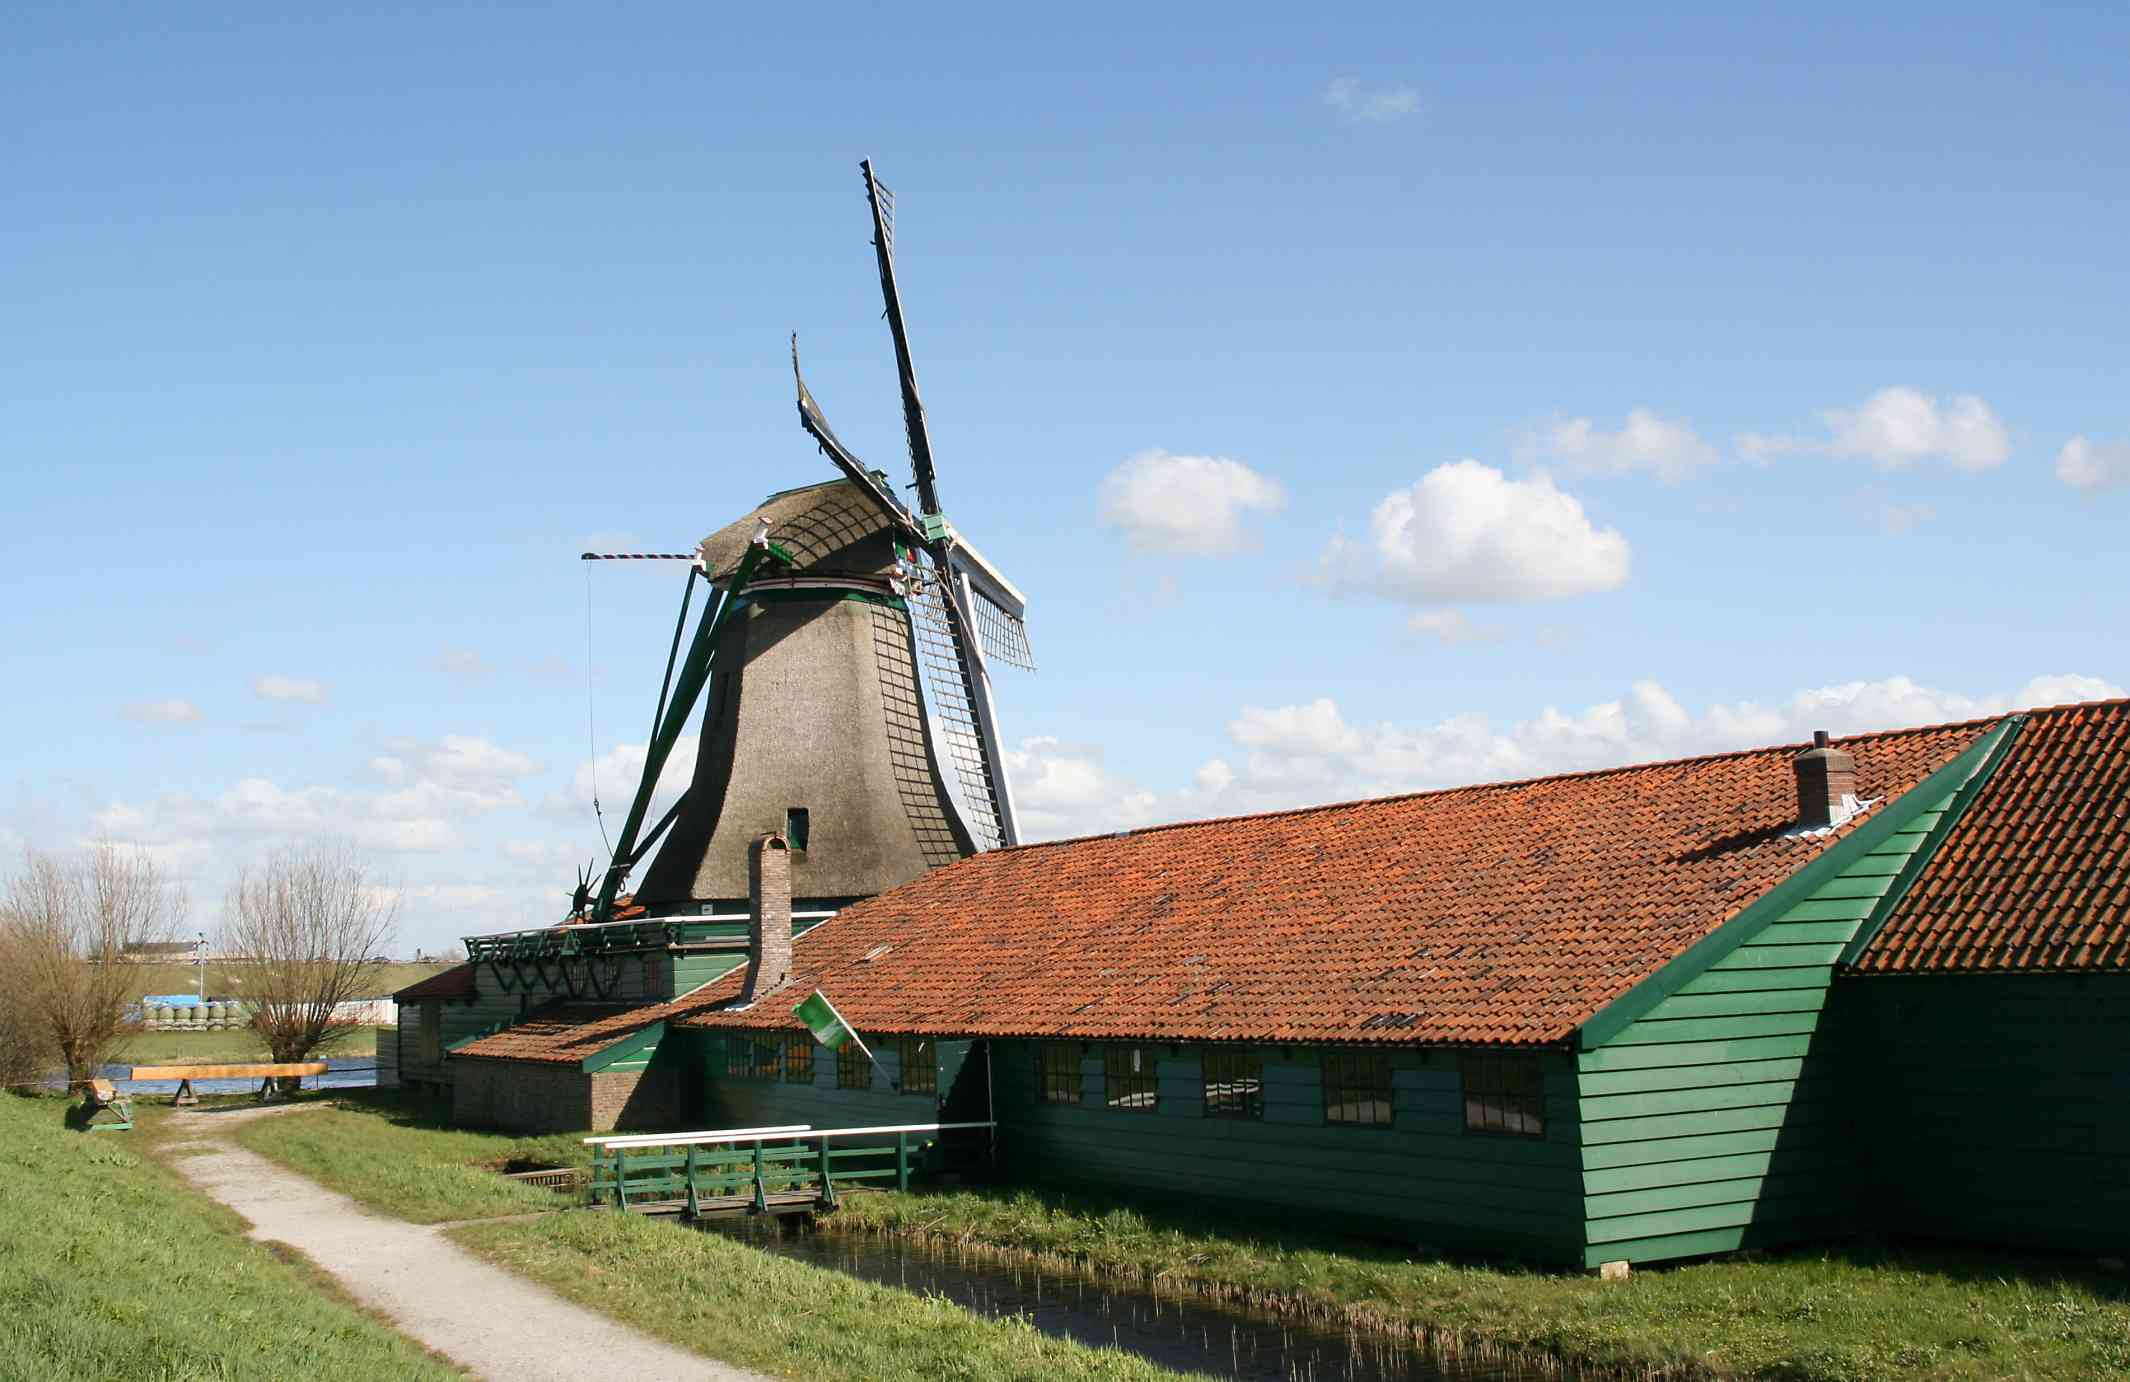 Wind-powered paper mill